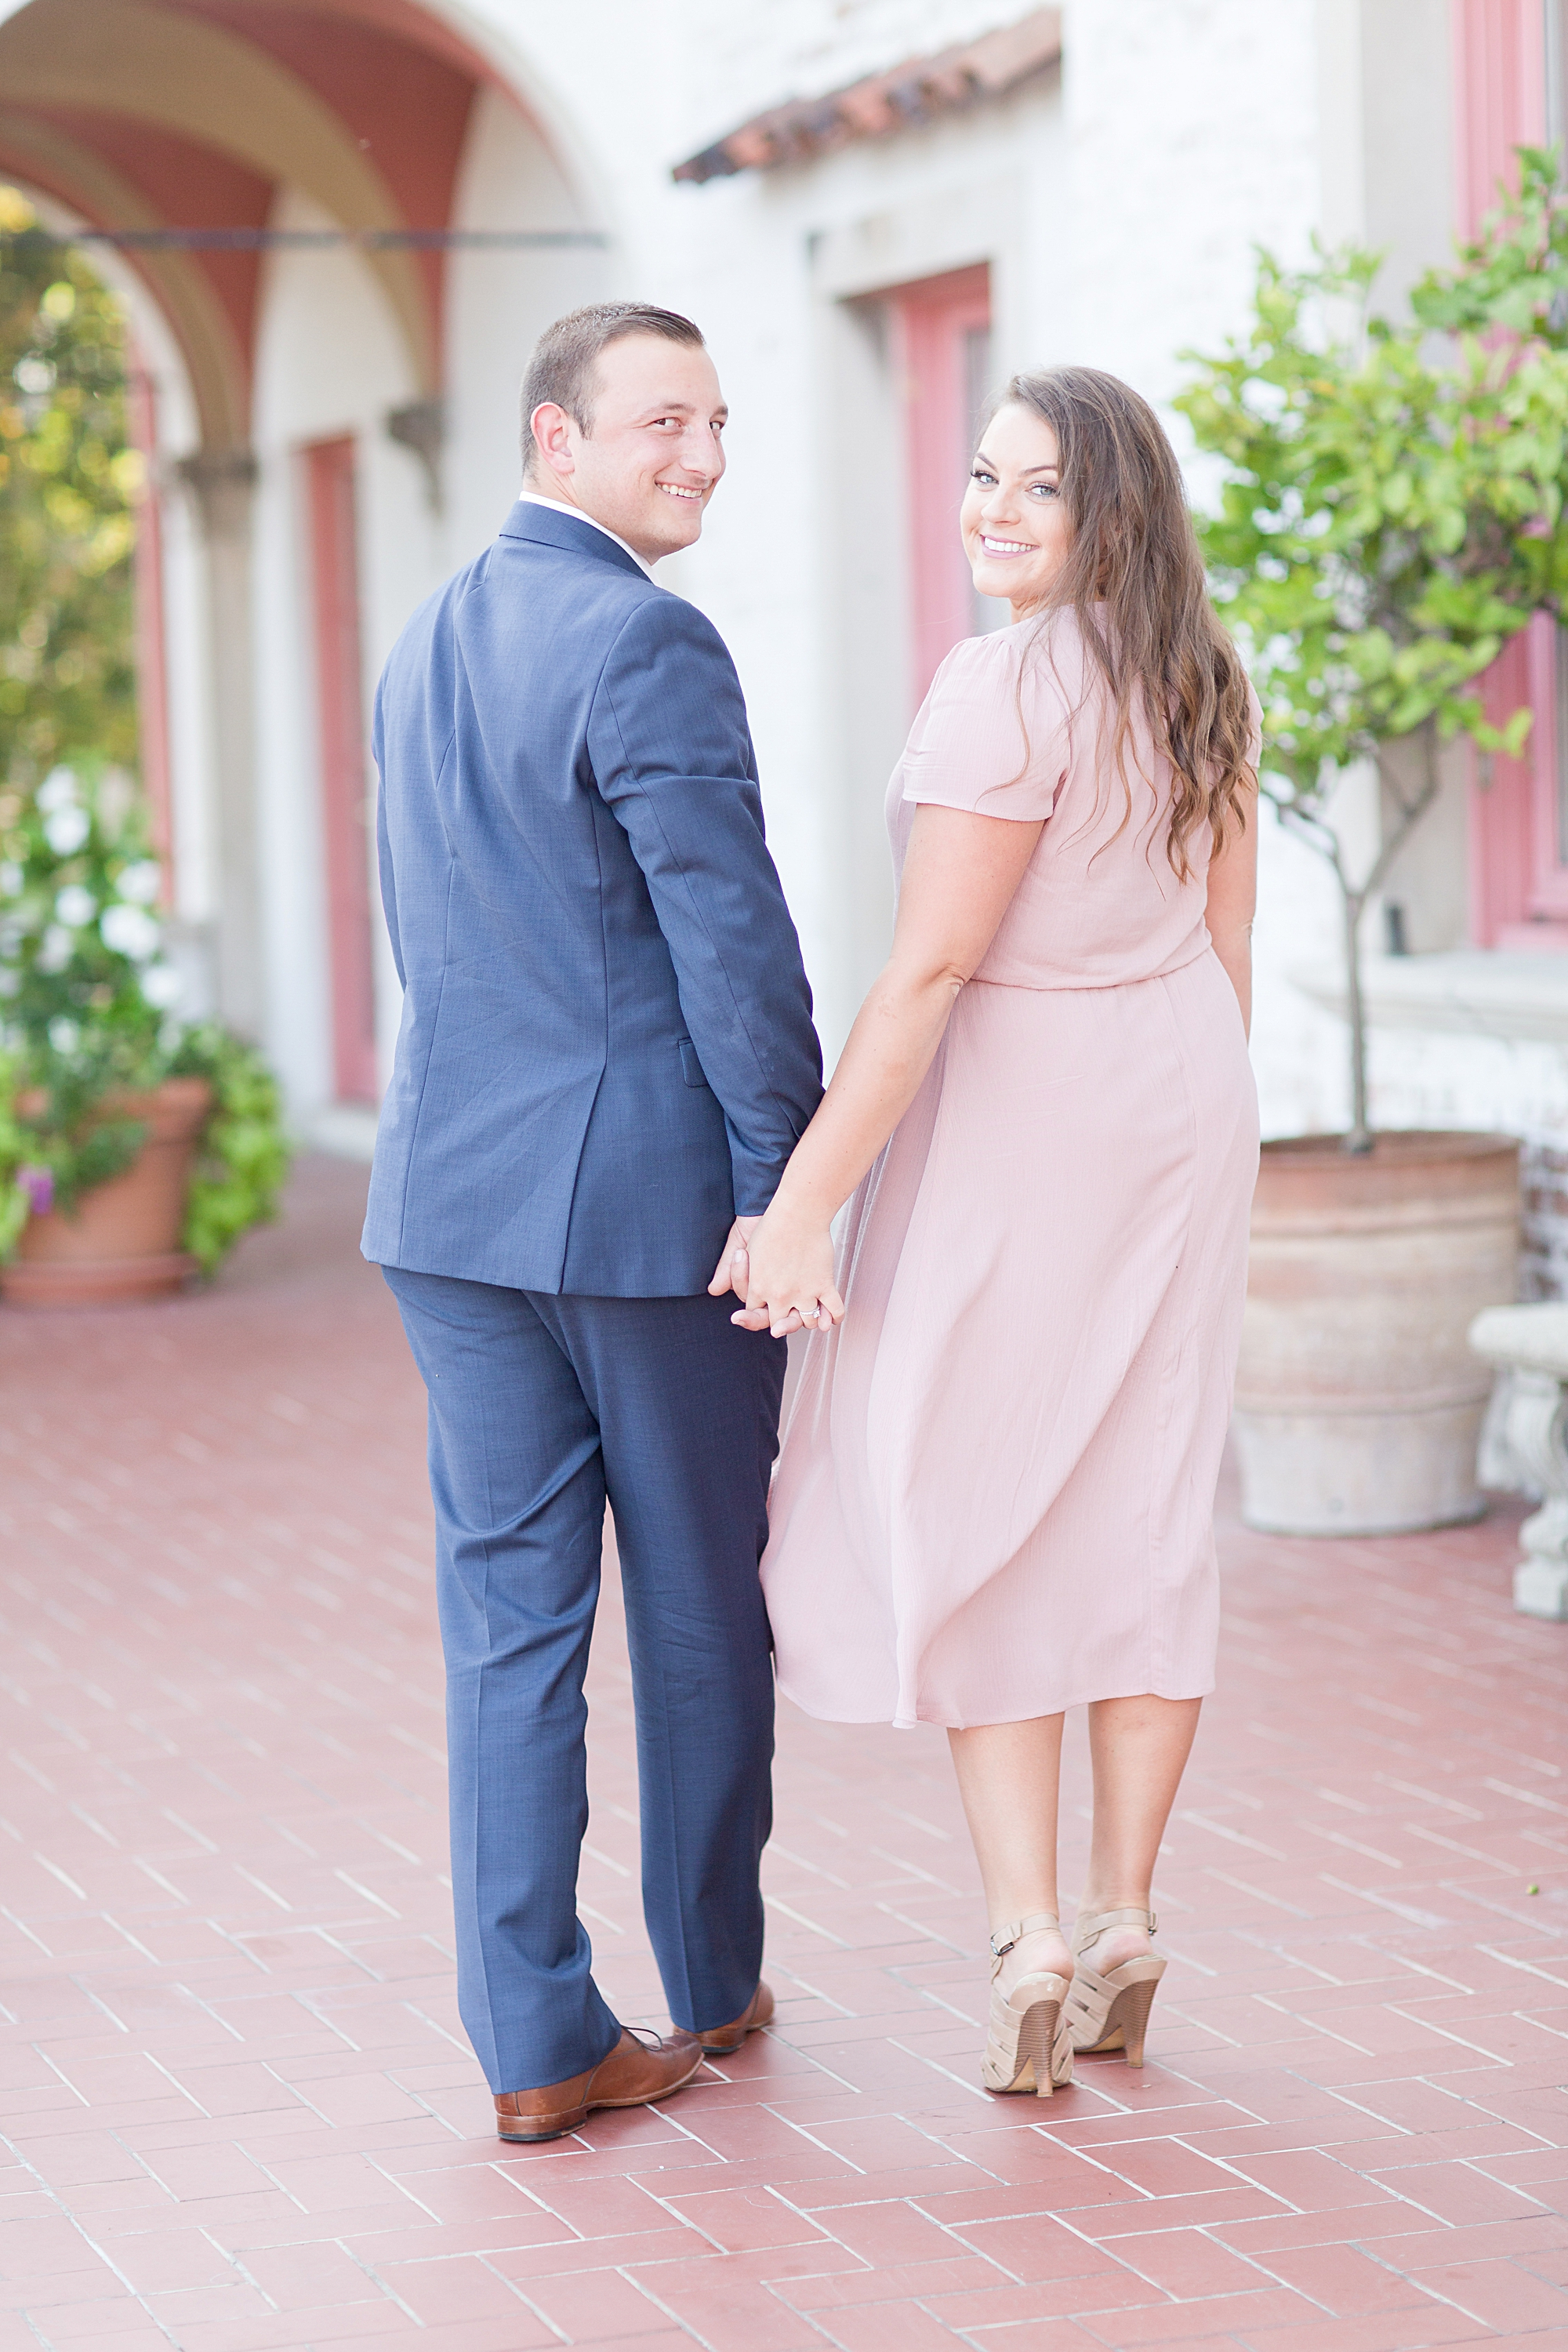 Villa Terrace Decorative Arts Museum Engagement Session